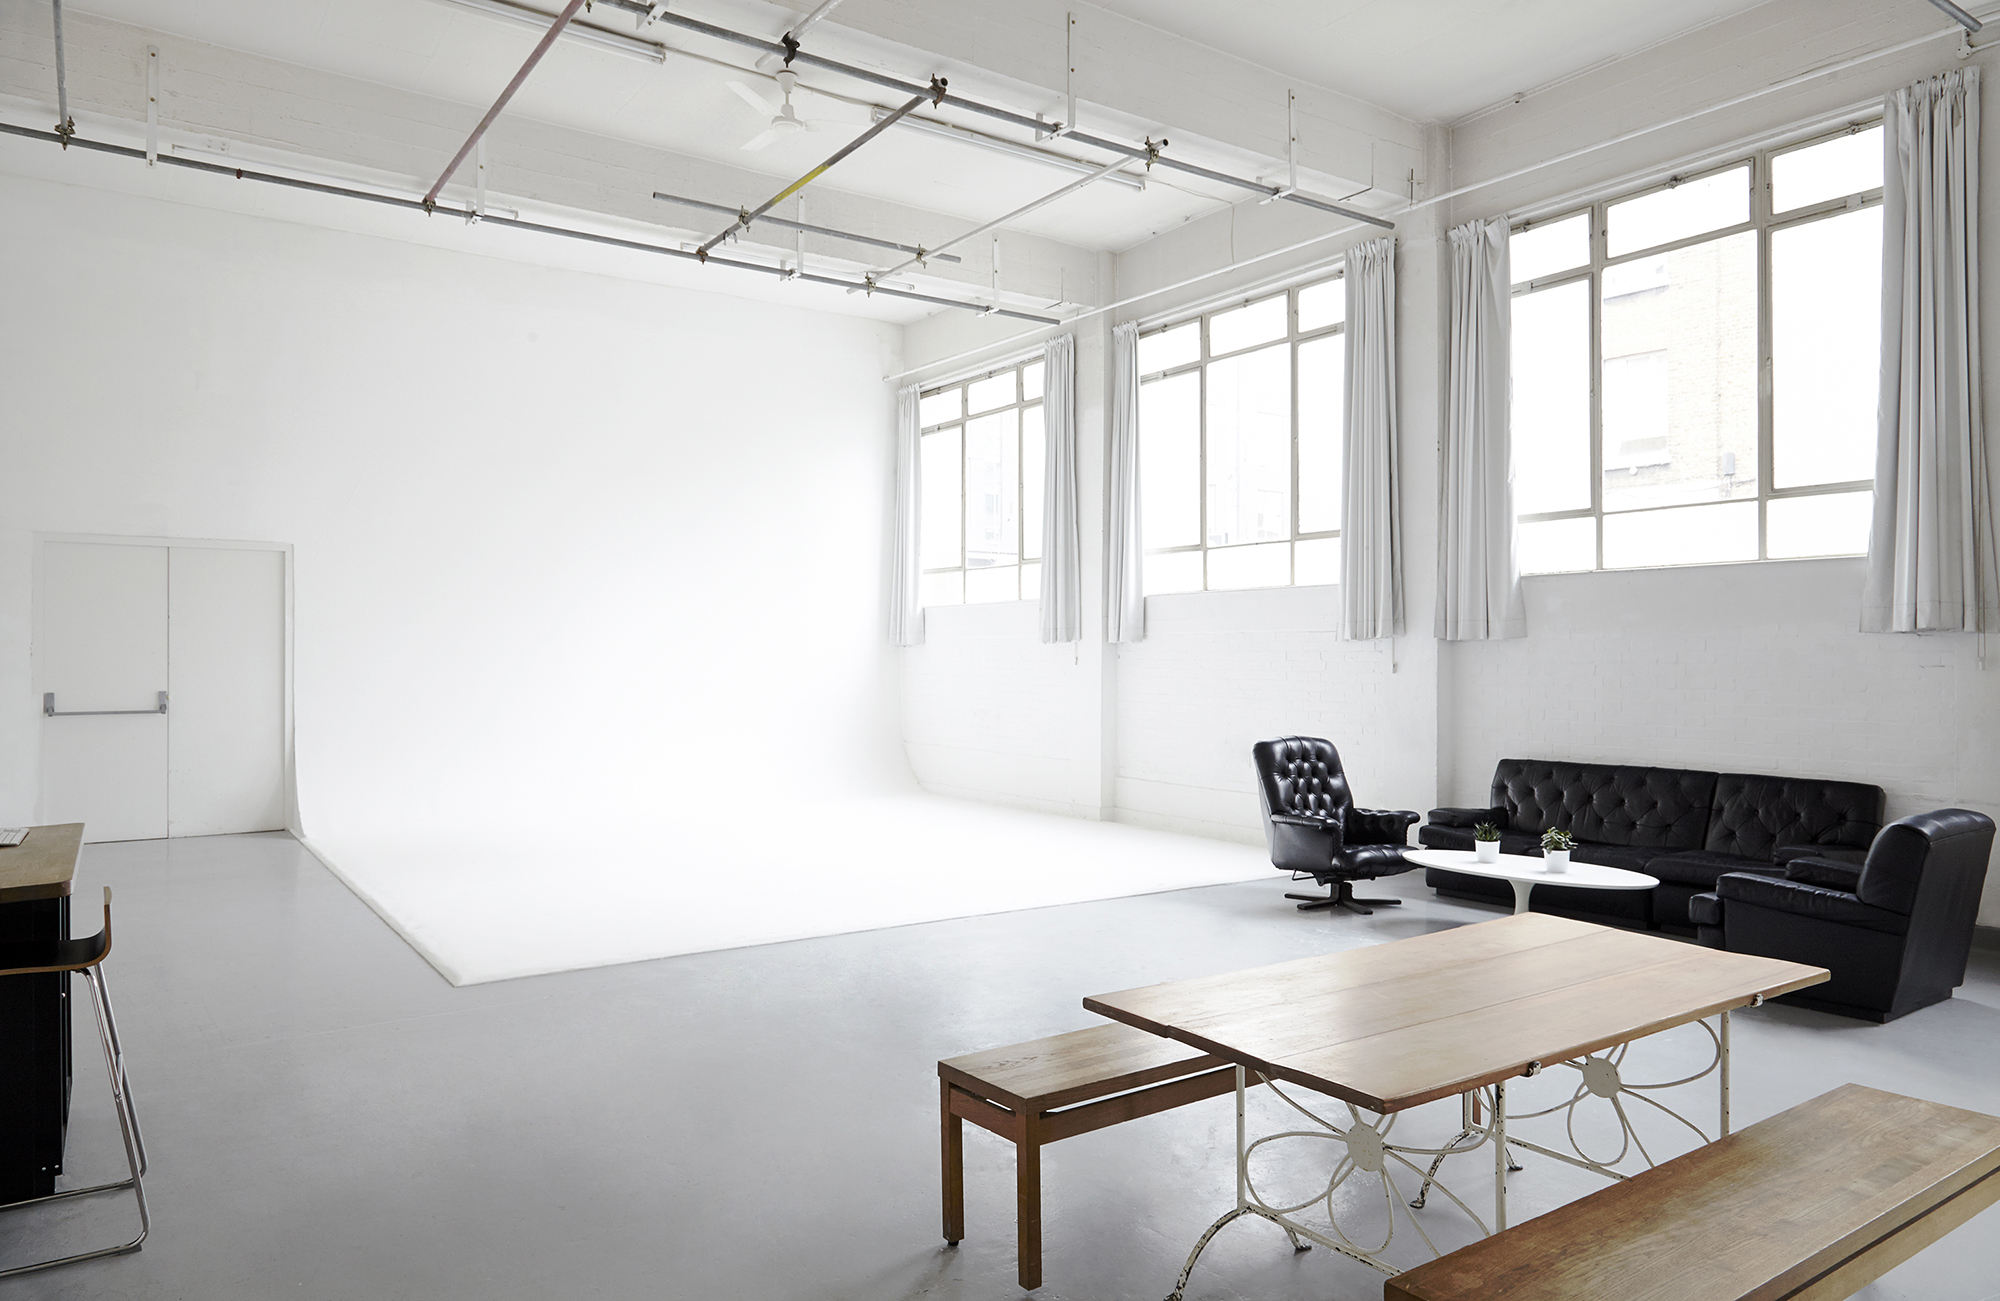 Studio 3 - front left with table.jpg